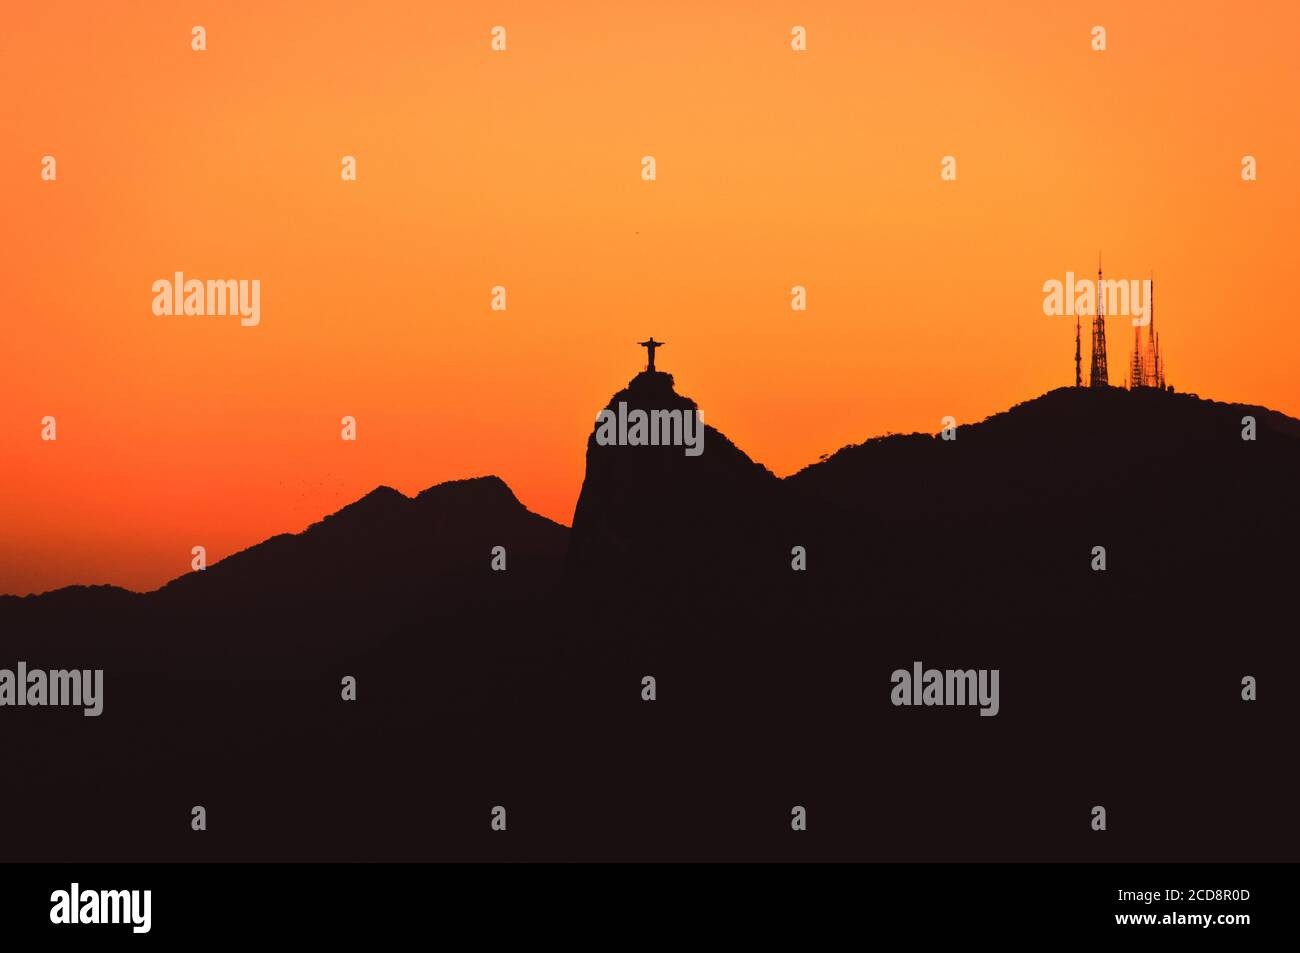 The famous Rio de Janeiro landmark - Christ the Redeemer statue and Corcovado mountain silhouette by sunset Stock Photo